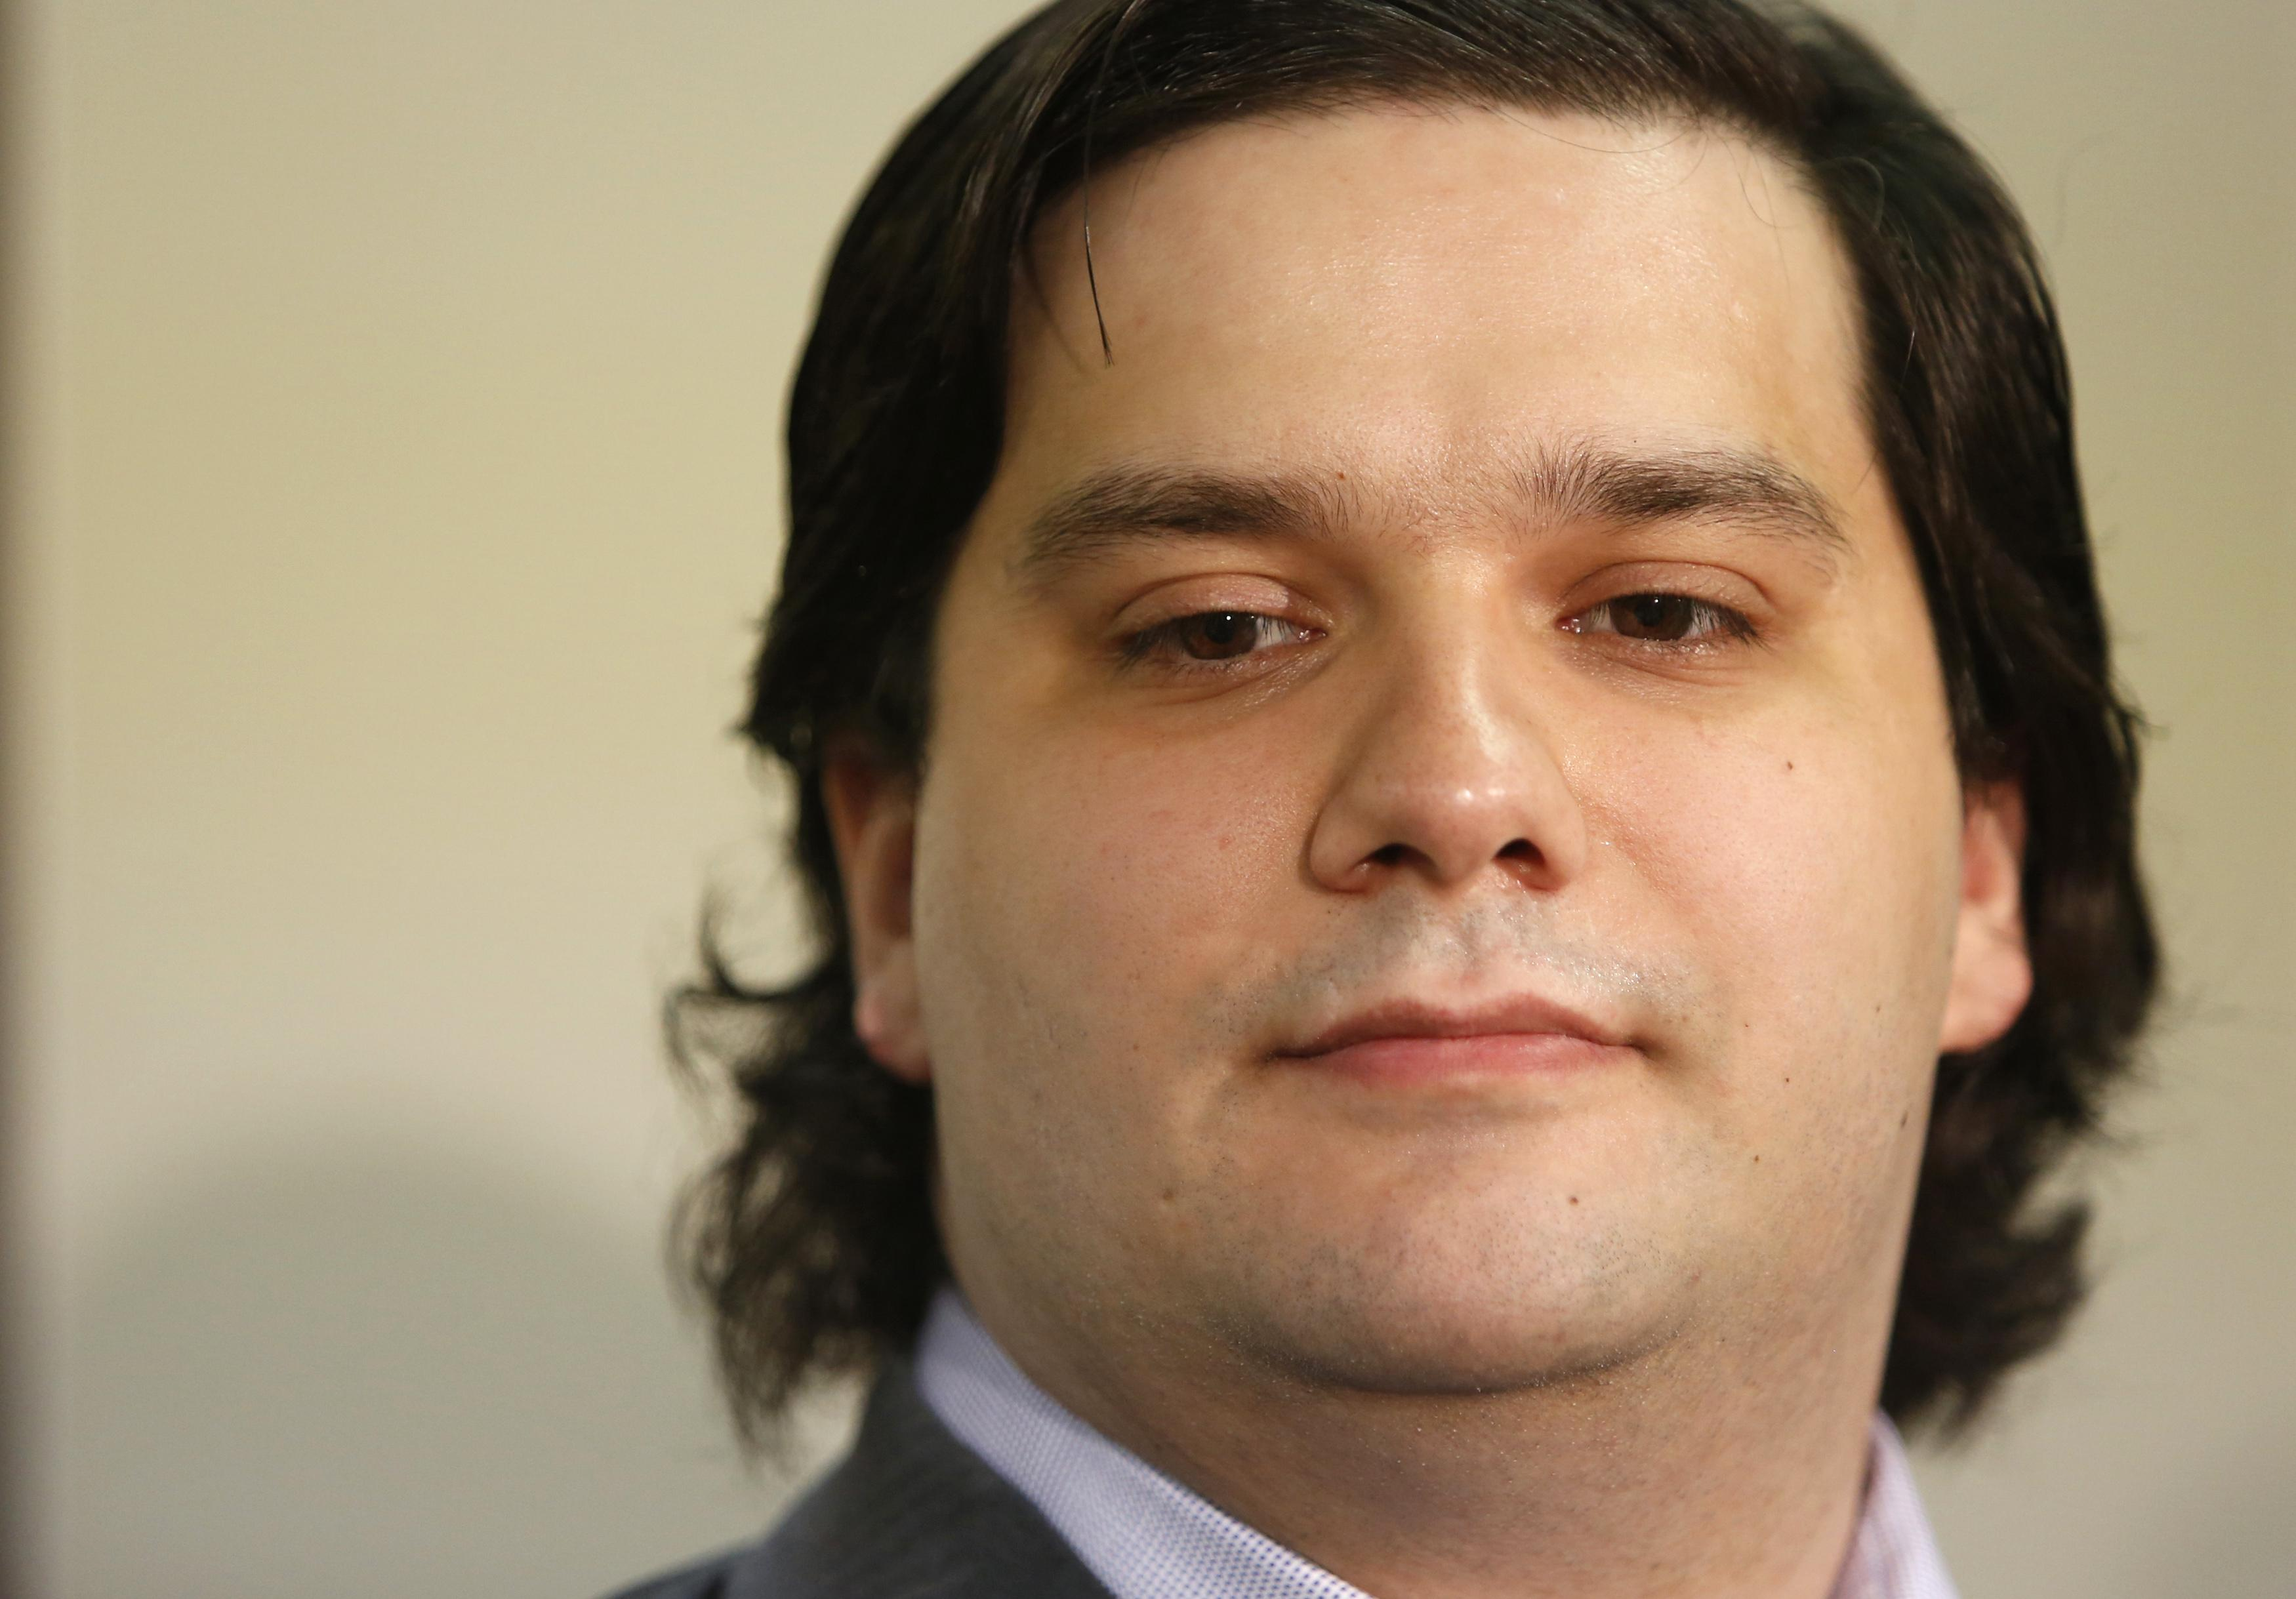 Mark Karpeles, CEO of Mt. Gox bitcoin exchange